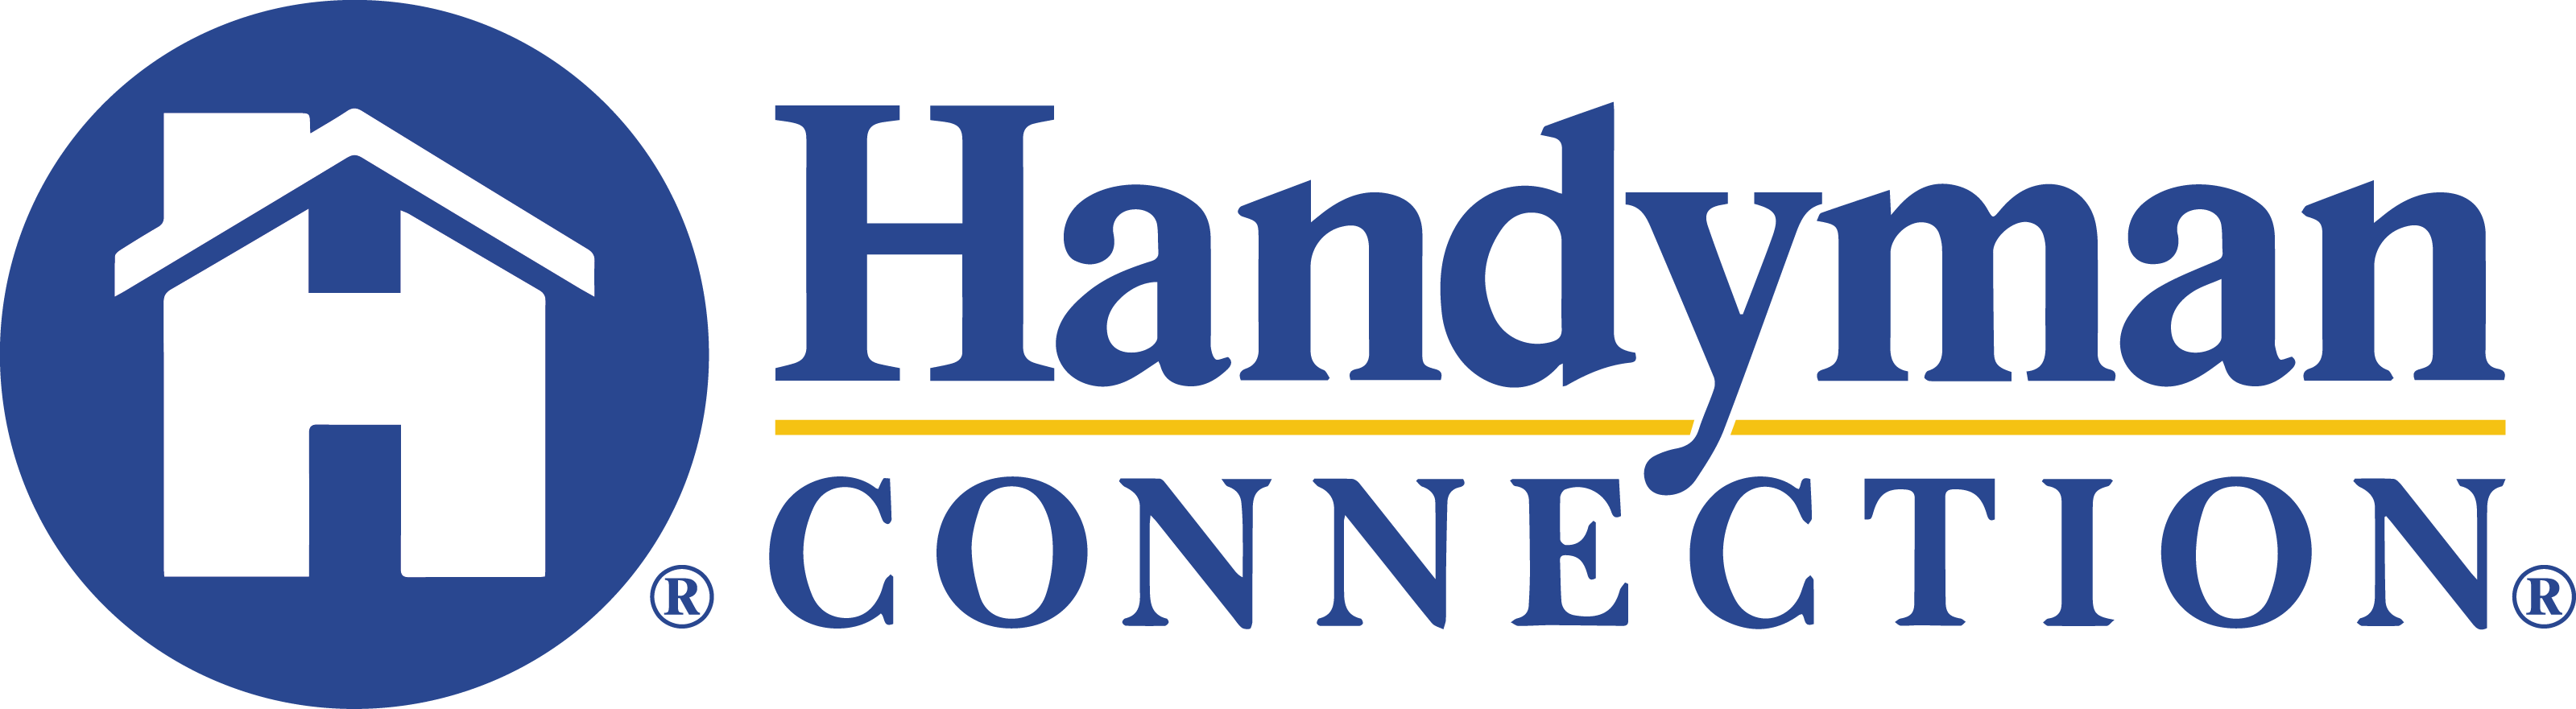 Handyman Connection of Boise, ID